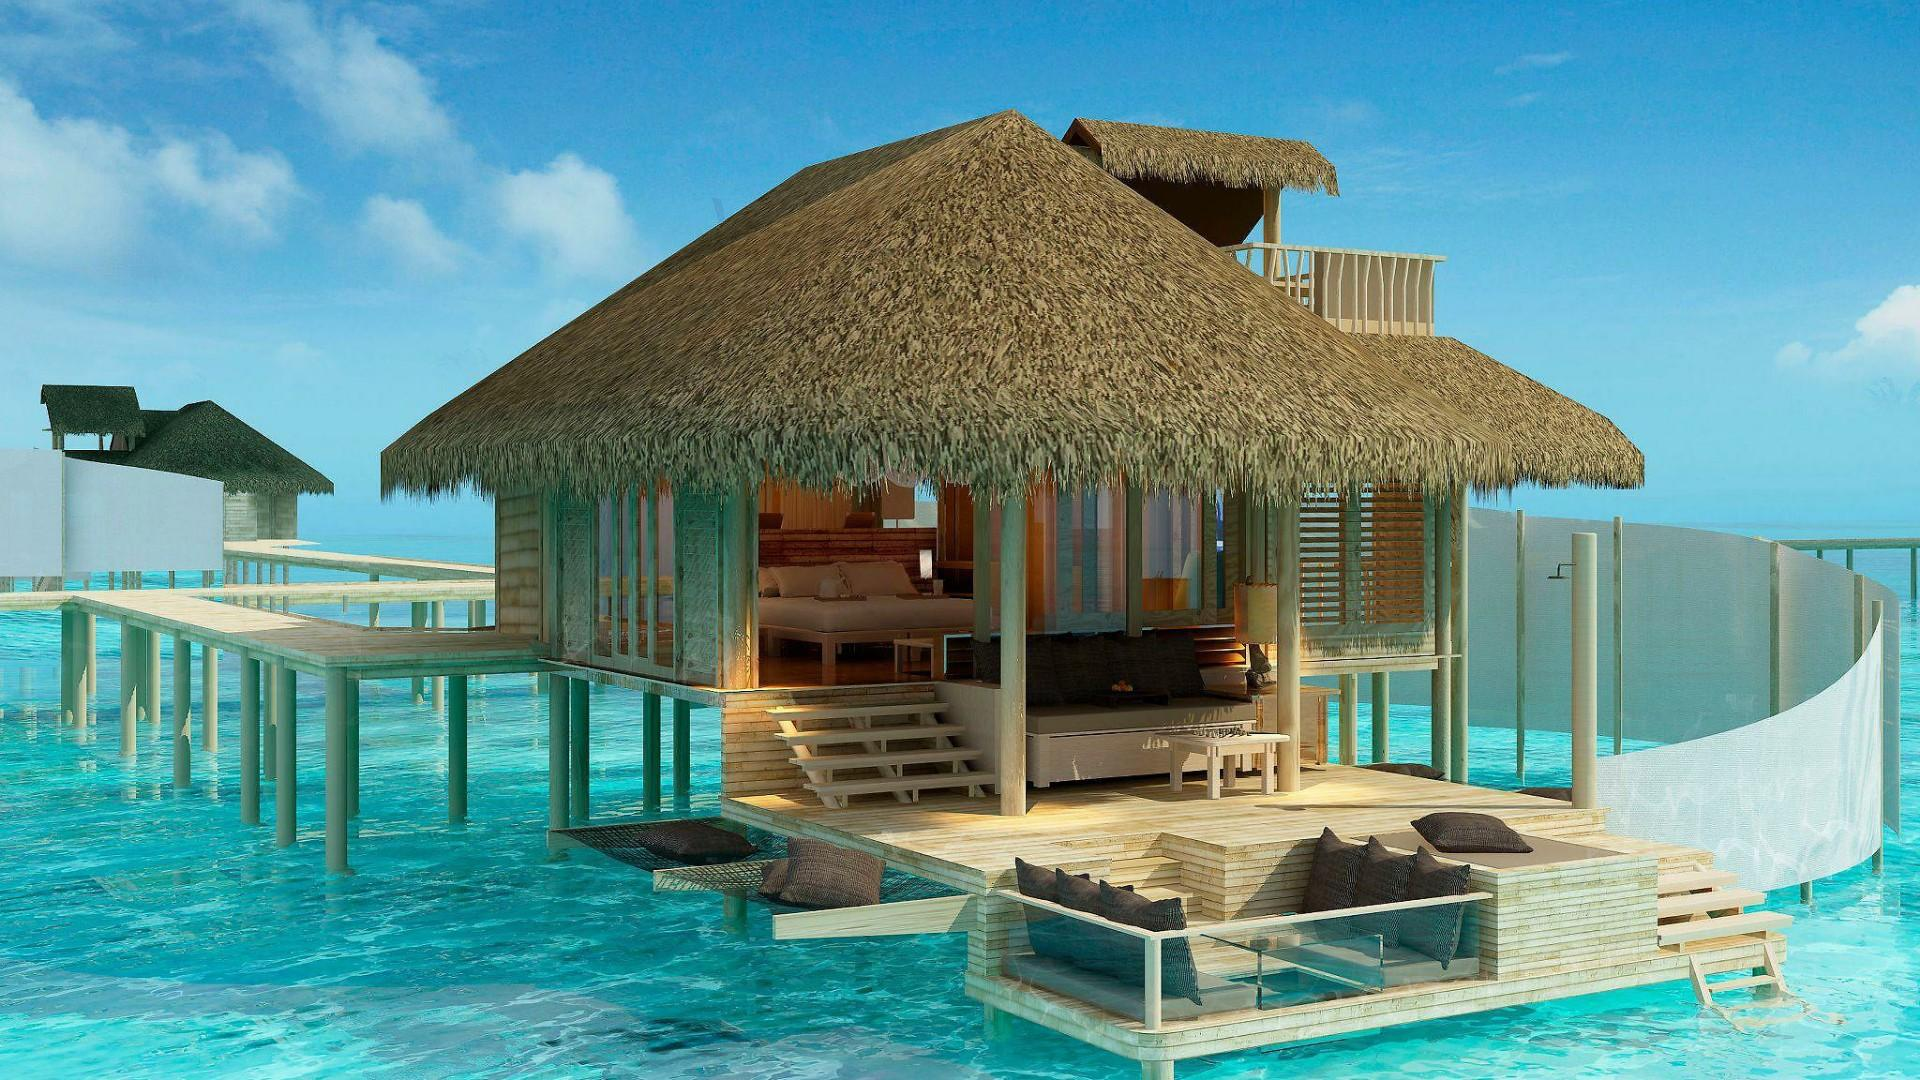 Overwater Bungalows In The Olhuveli Island, Maldives HD Wallpapers